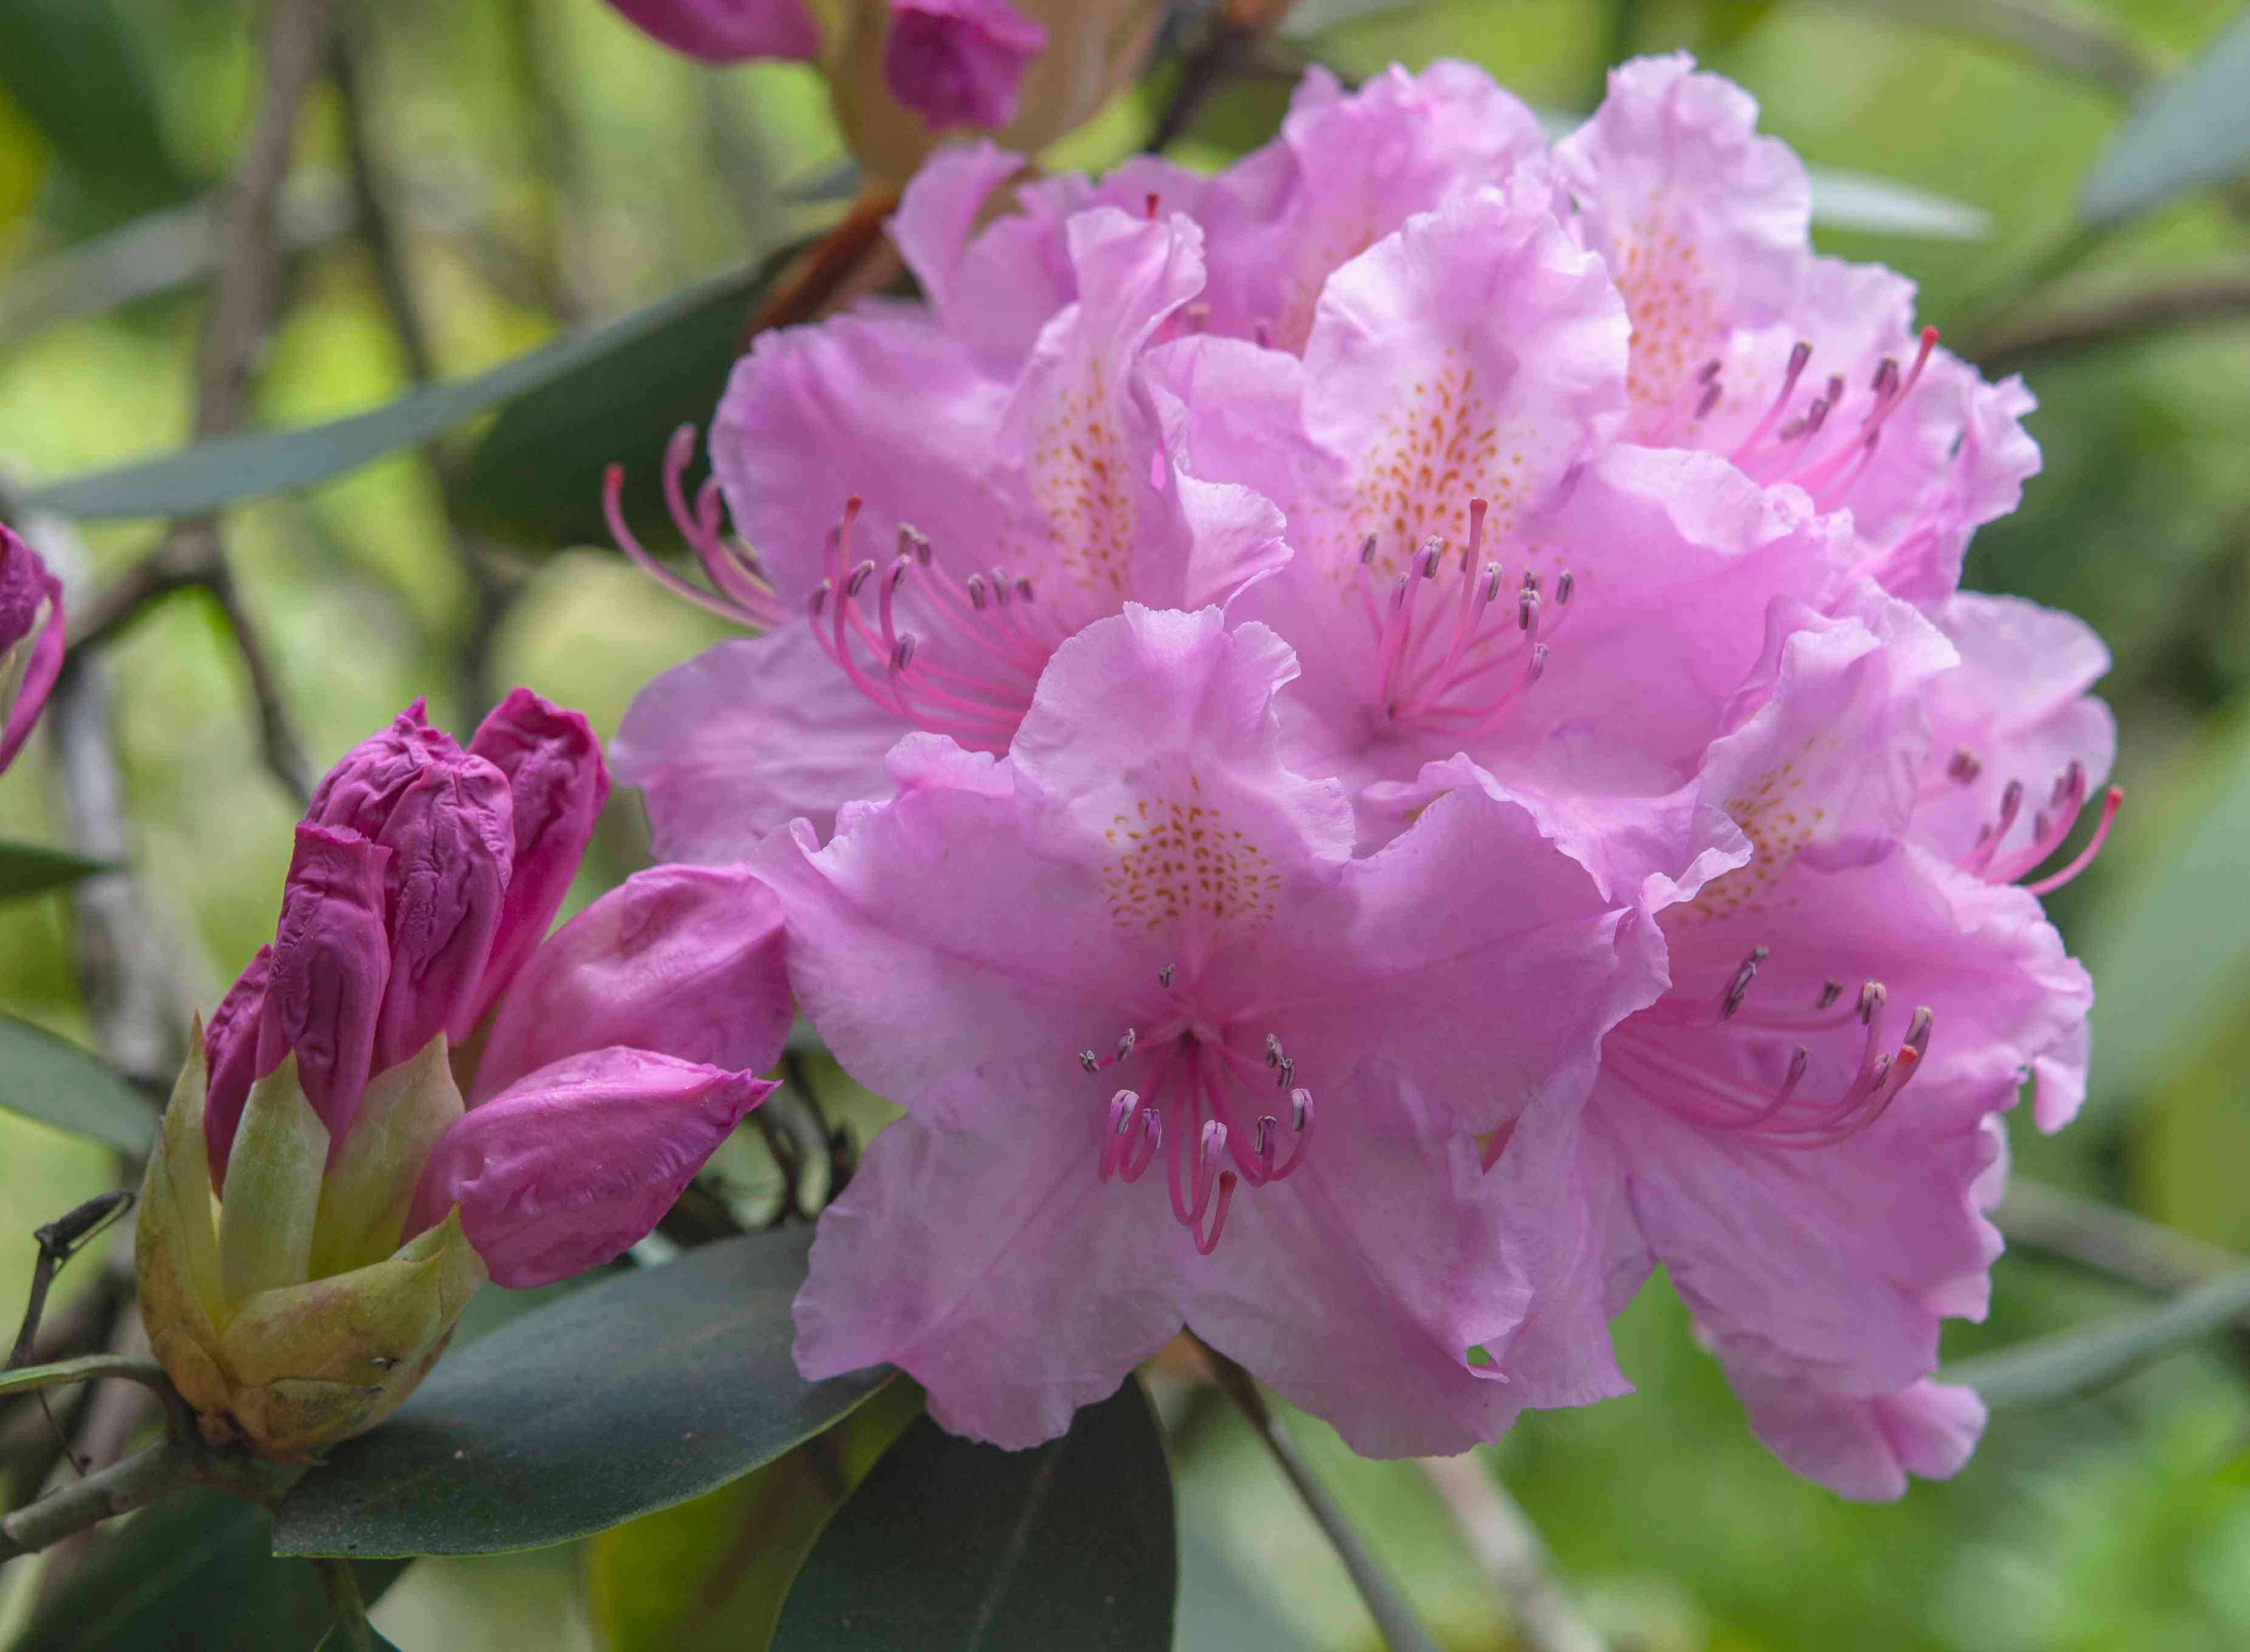 Rhododendron shrub with pink flowers and buds closeup